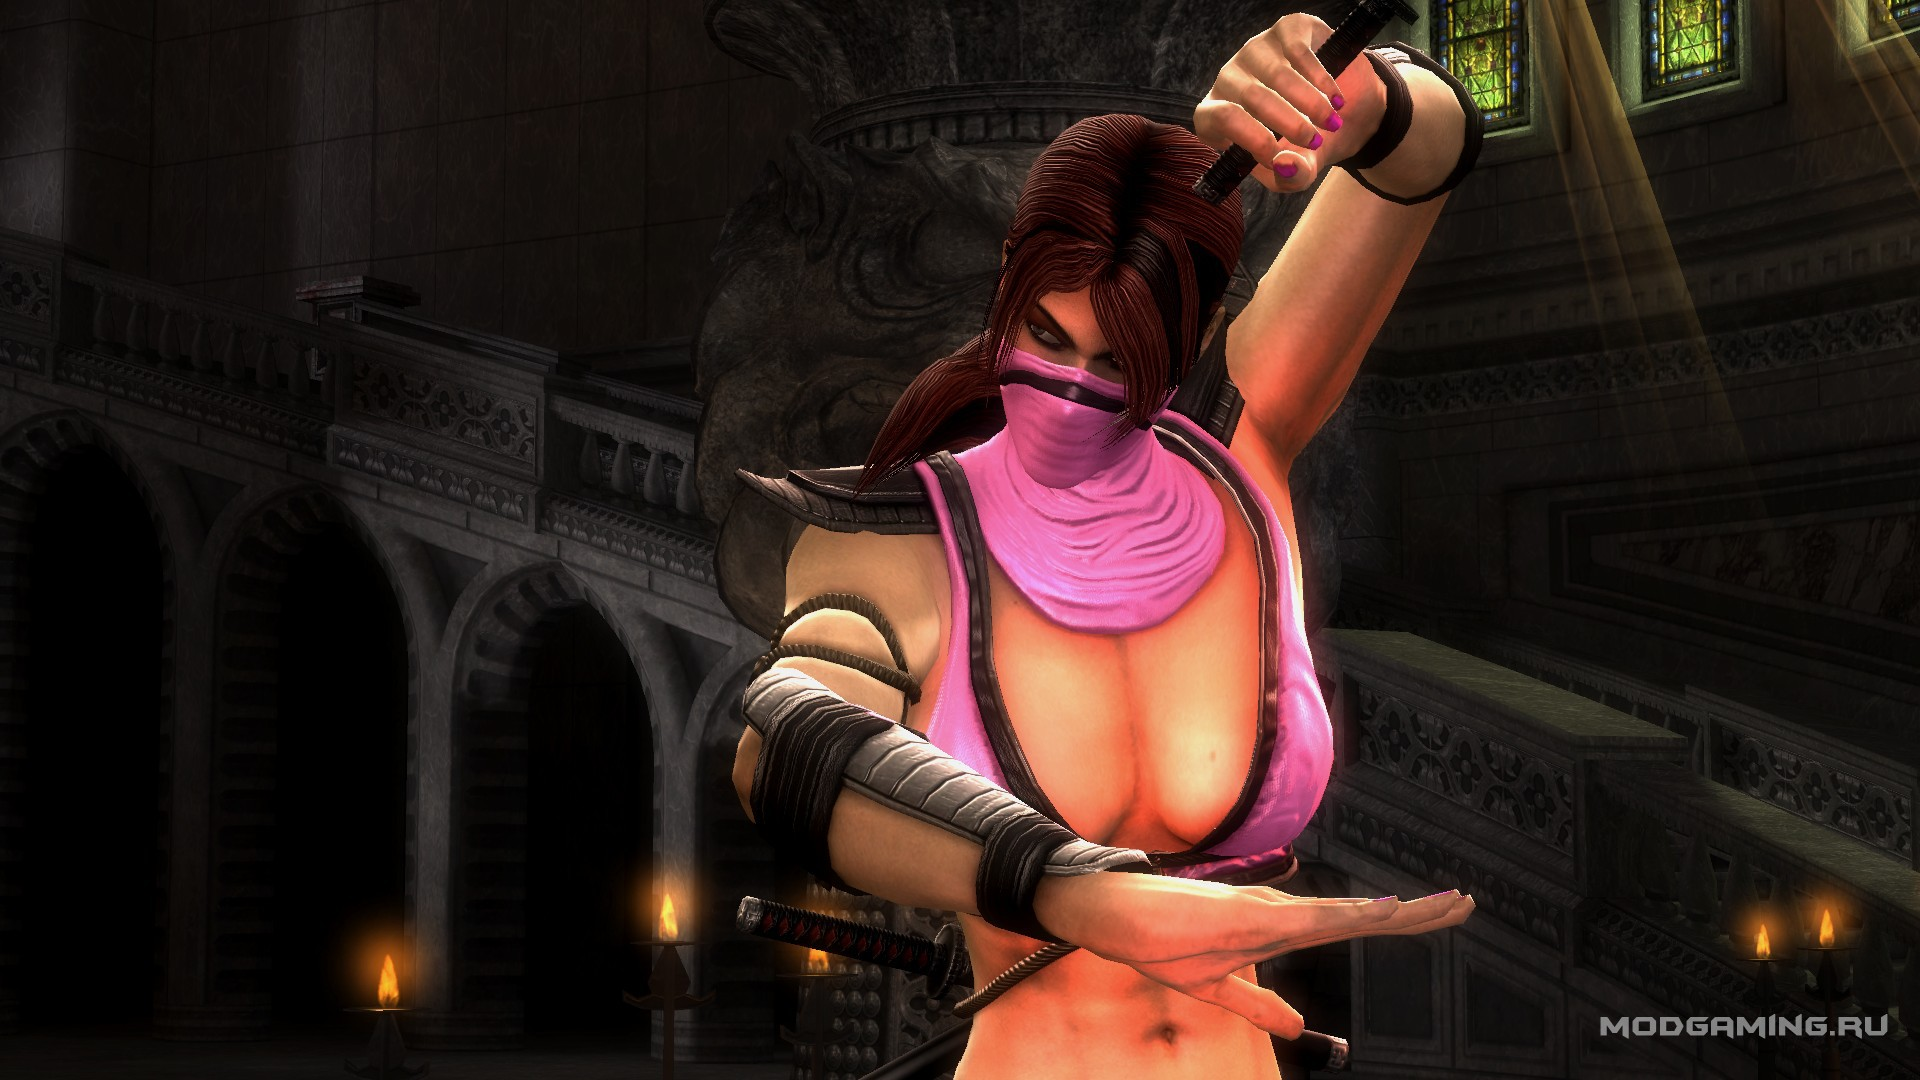 Mortal kombat nude skins exposed pussy sexy photo